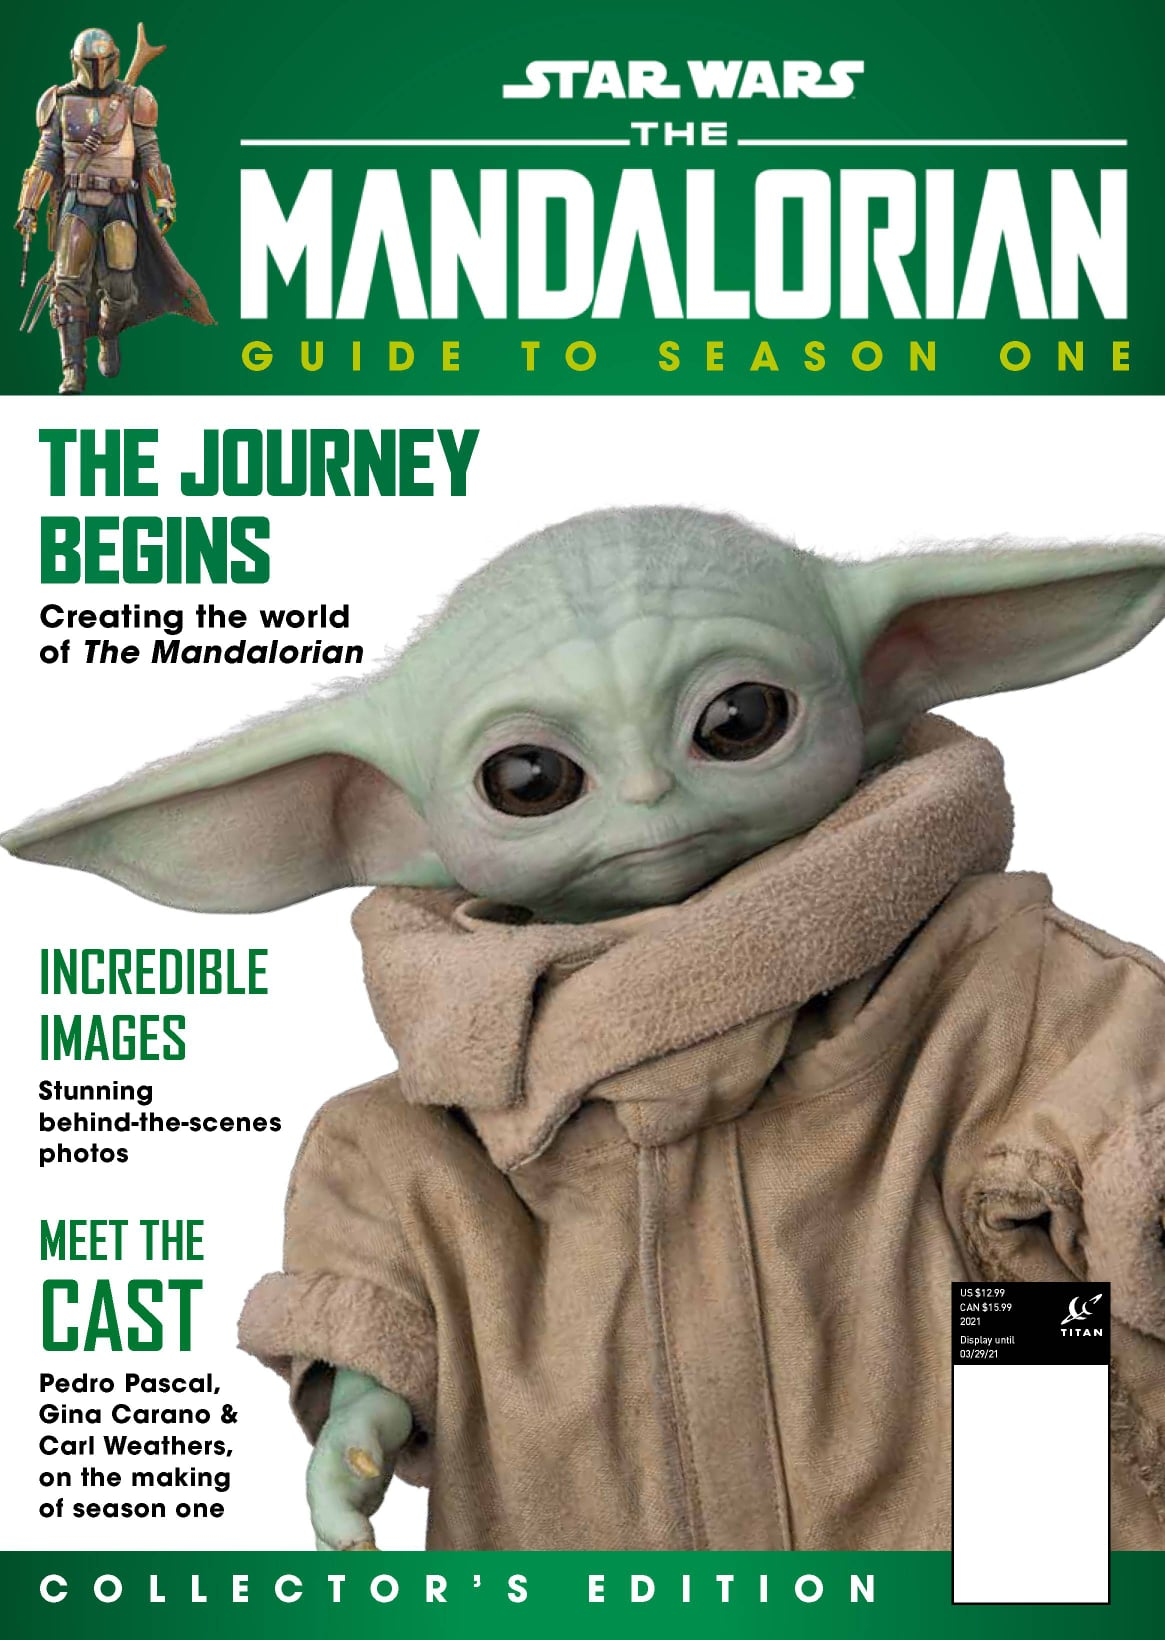 Star Wars The Mandalorian Season One: The Official Collector's Edition